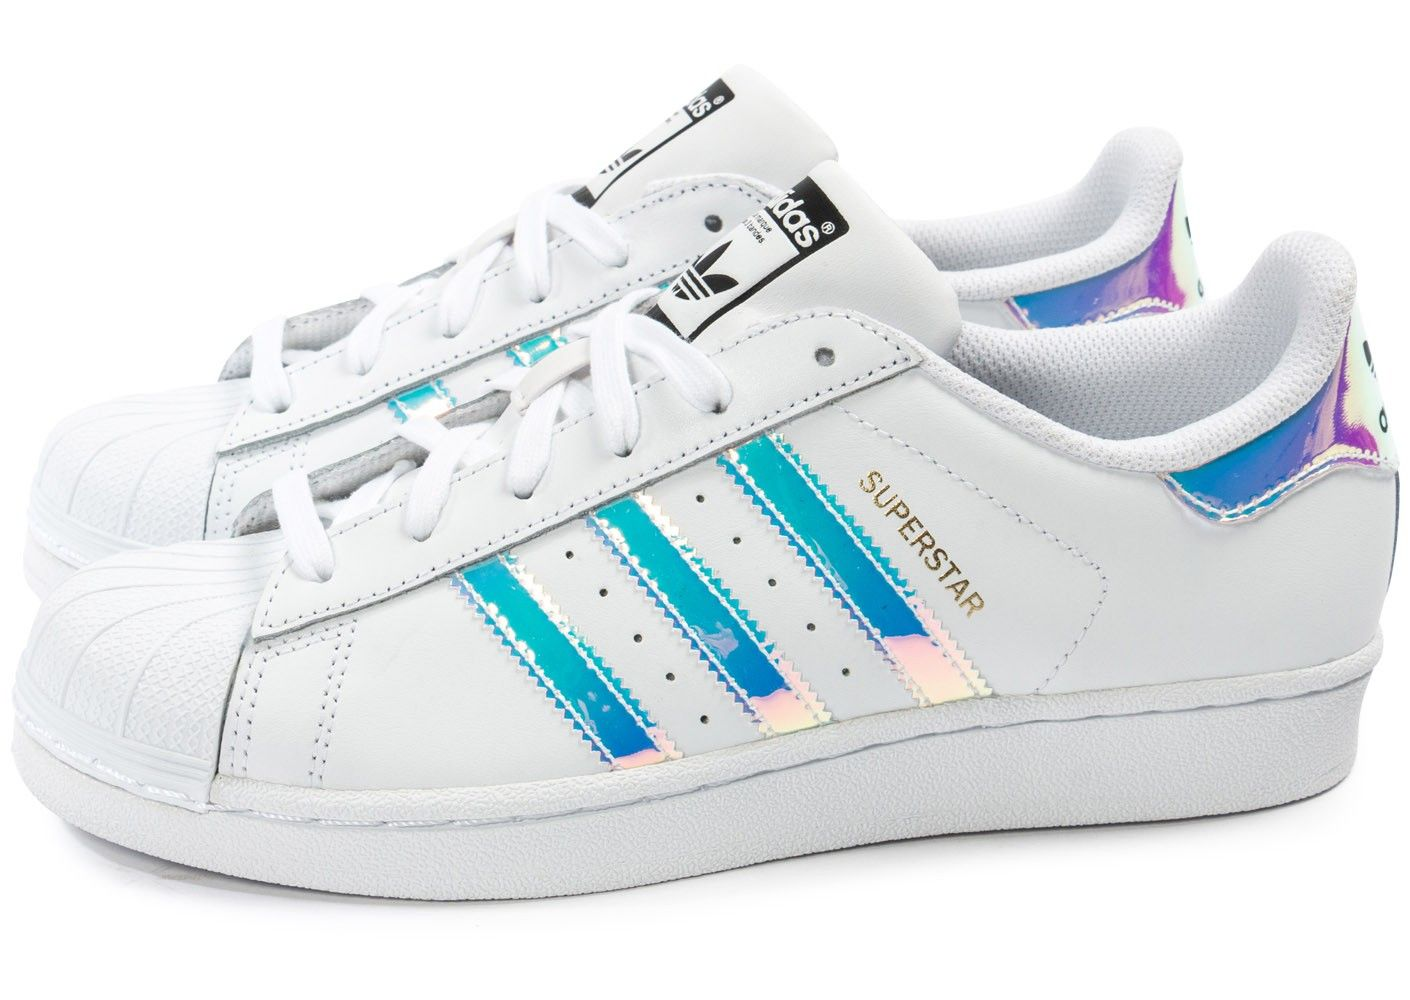 100% authentic 26193 ffe89 Adidas Women Shoes - adidas Superstar Irisée Junior - Chaussures Femme -  Chausport - We reveal the news in sneakers for spring summer 2017